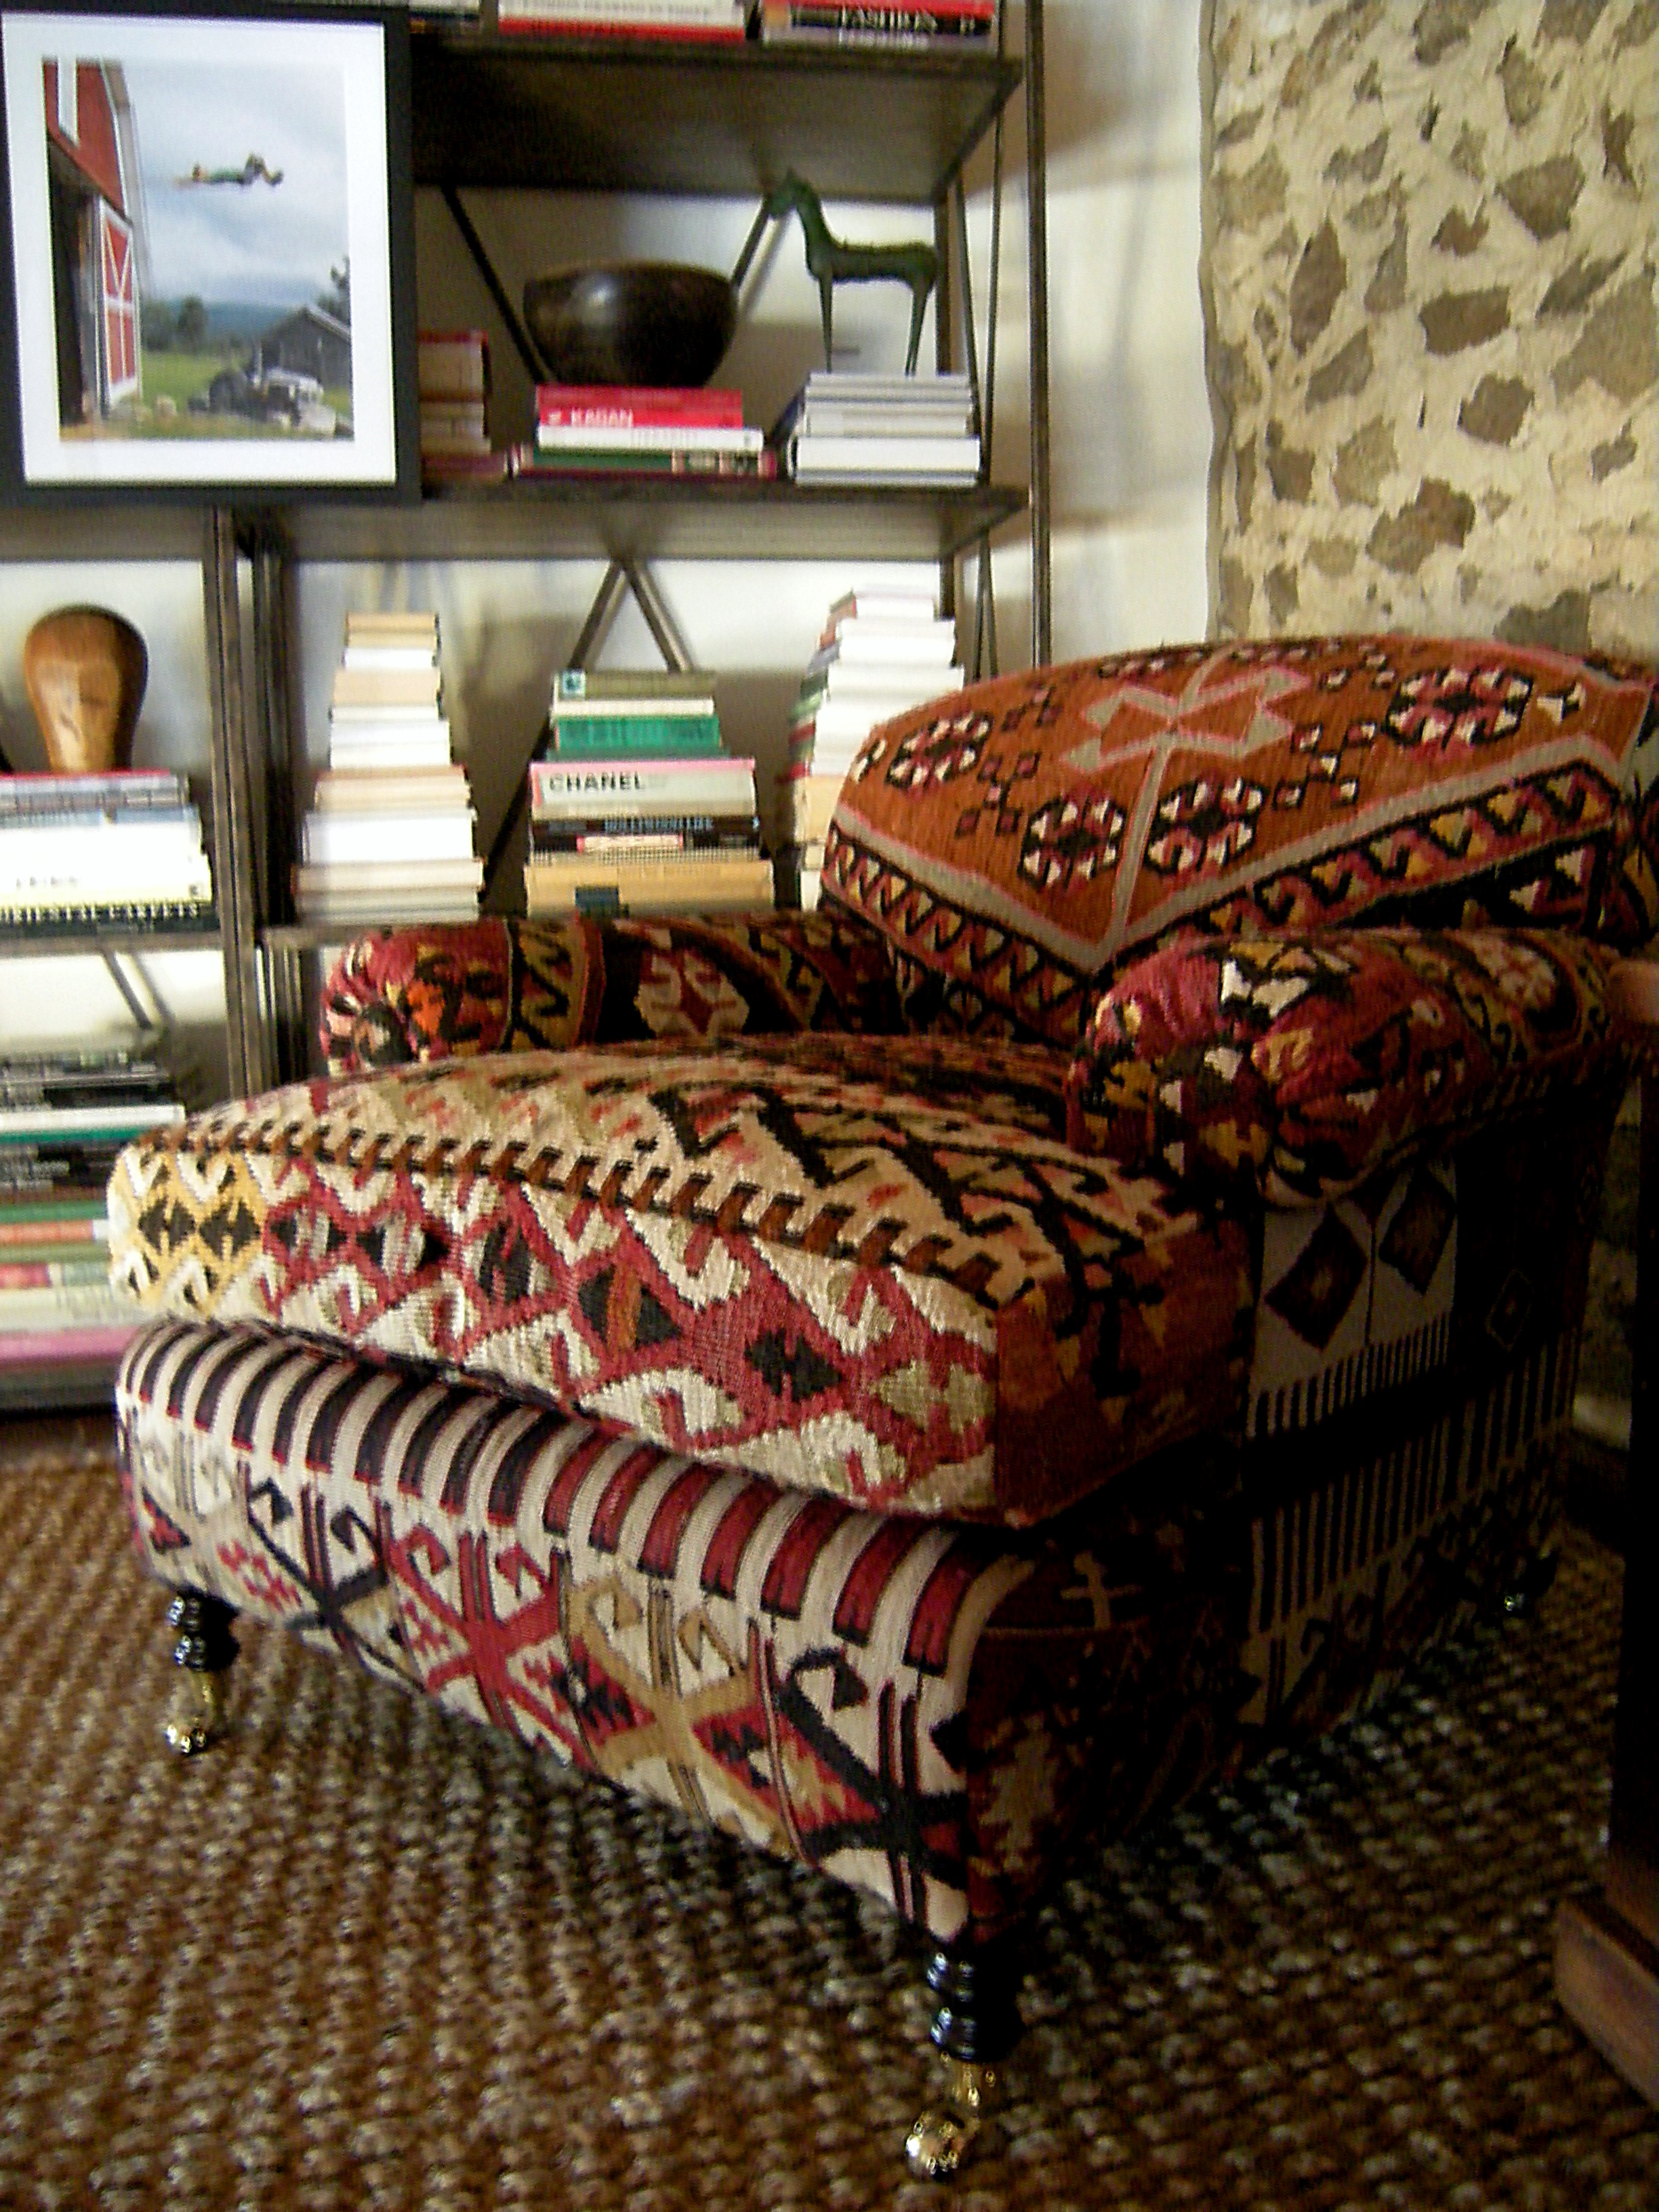 The Rustic Chic Kilim Rustic Chic